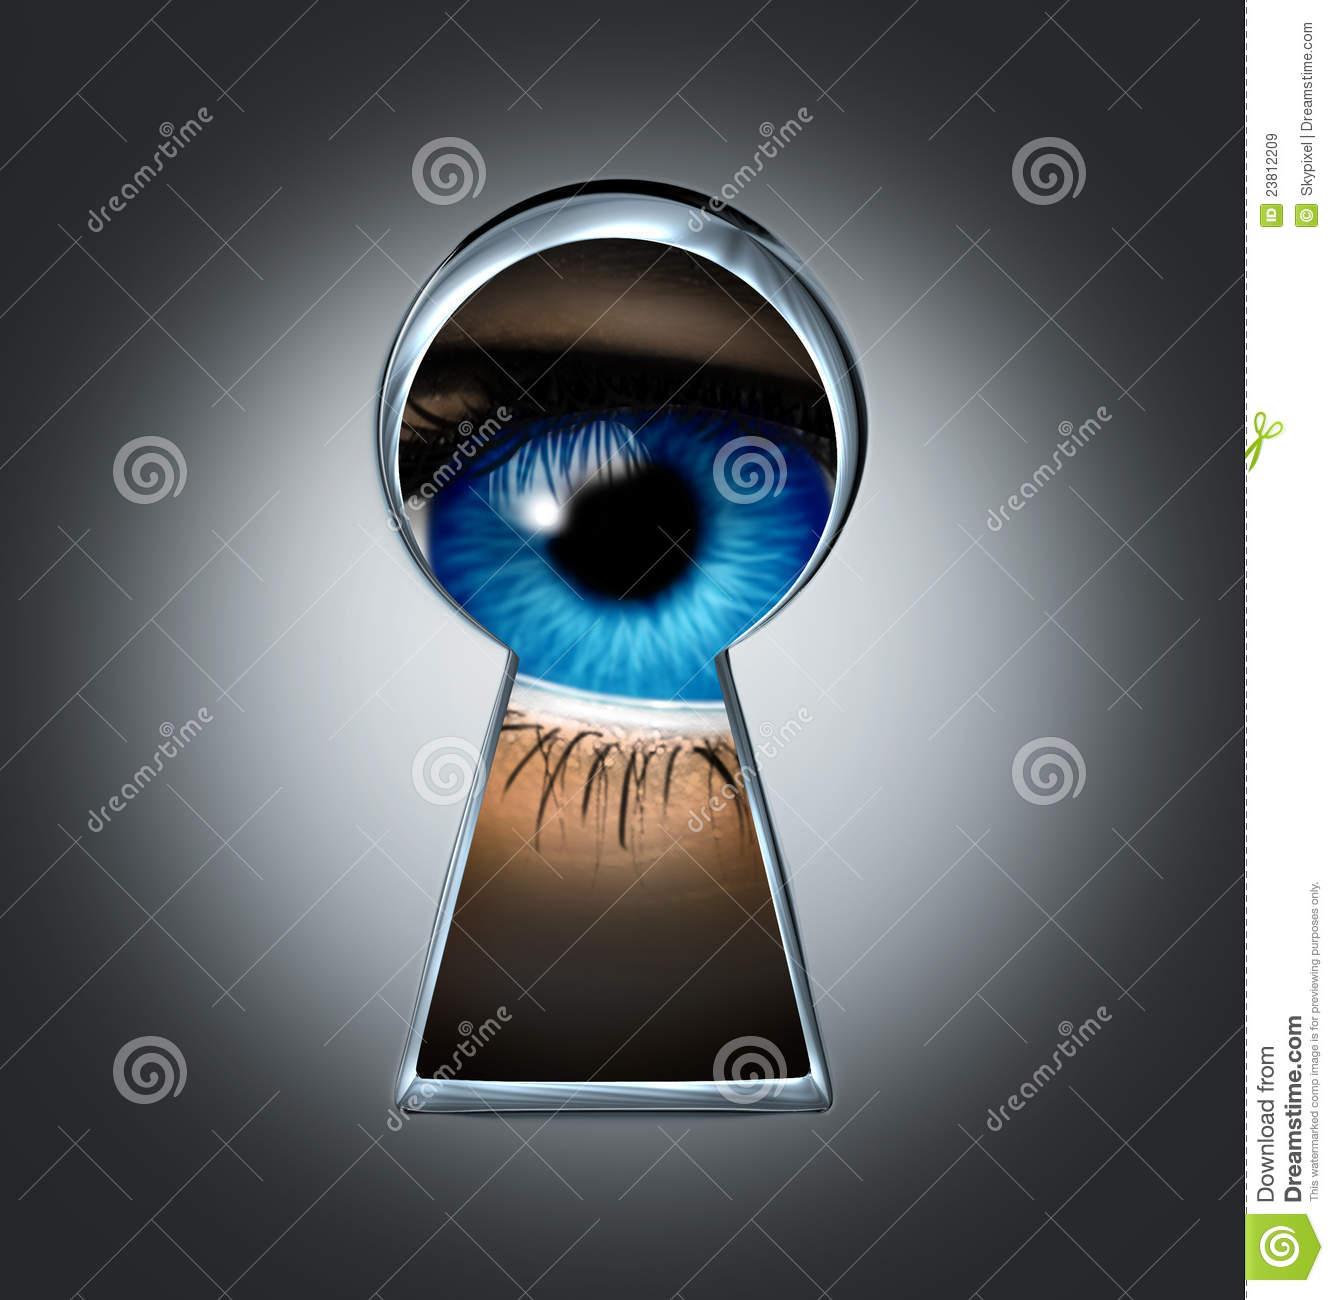 Eye Looking Through A Keyhole Royalty Free Stock Images